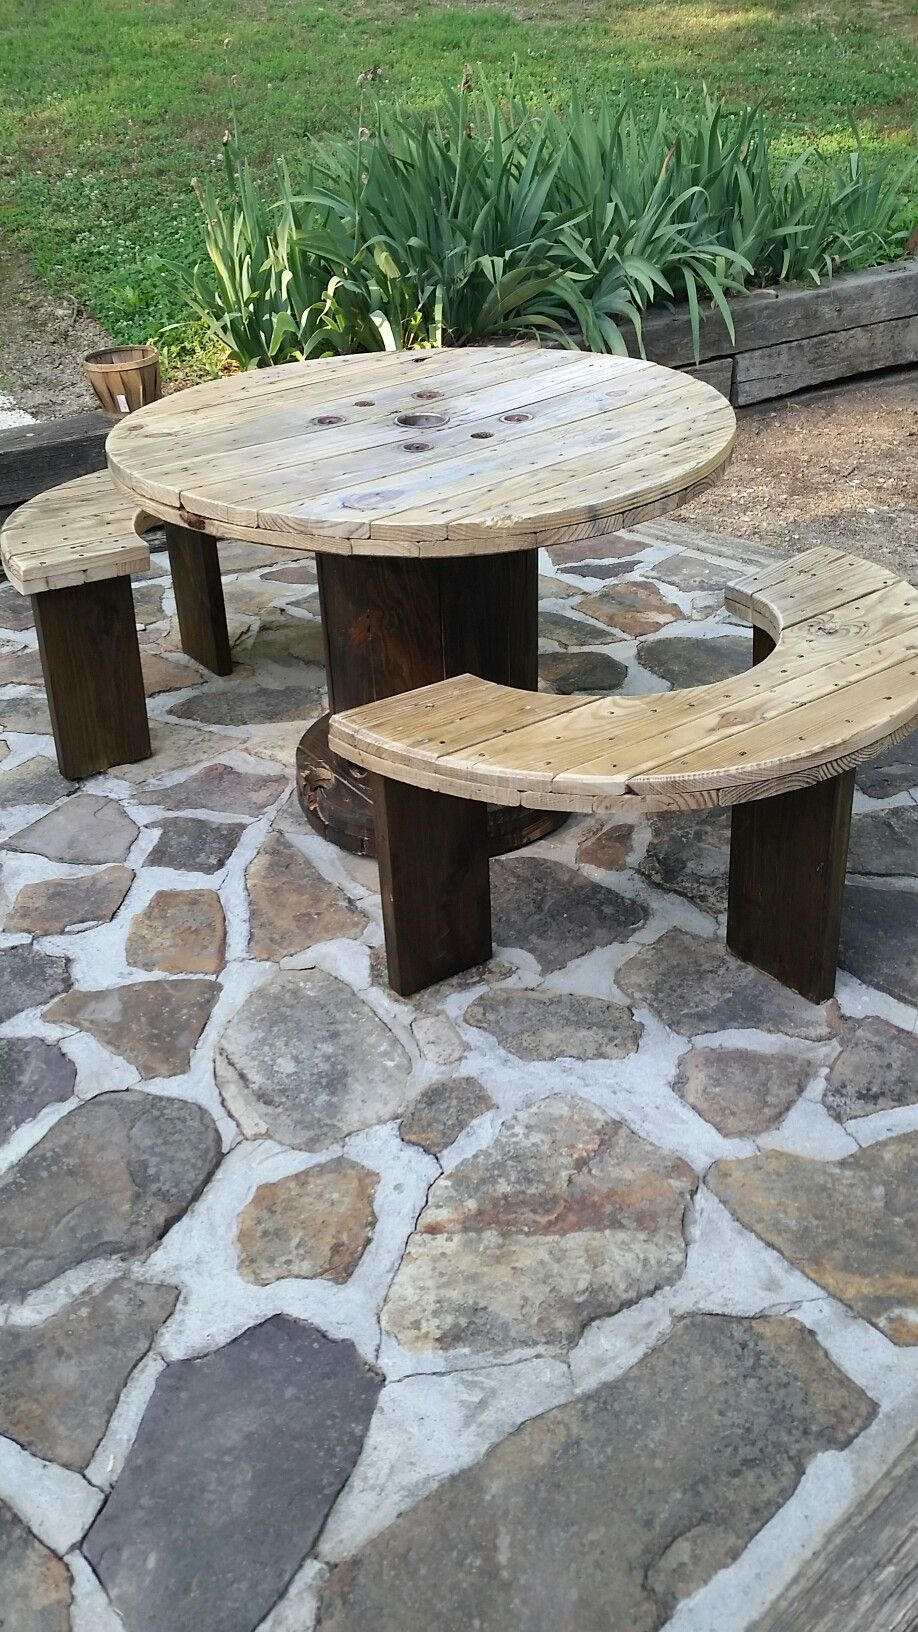 Spool table | Home projects | Pinterest | Pallets, Backyard and Gardens